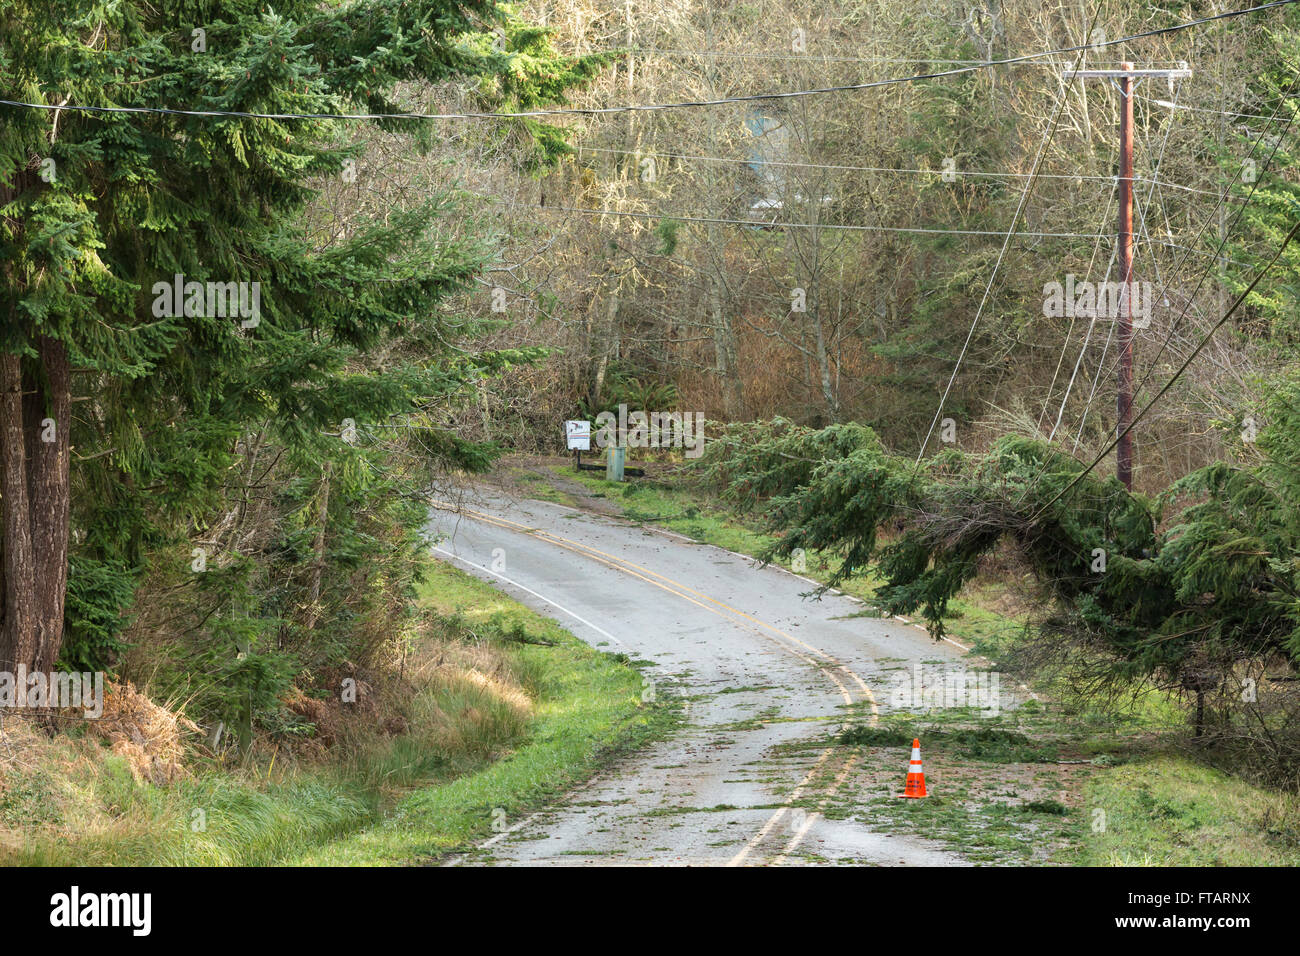 Fallen trees and downed power lines blocking a road; hazards after a natural disaster wind storm - Stock Image